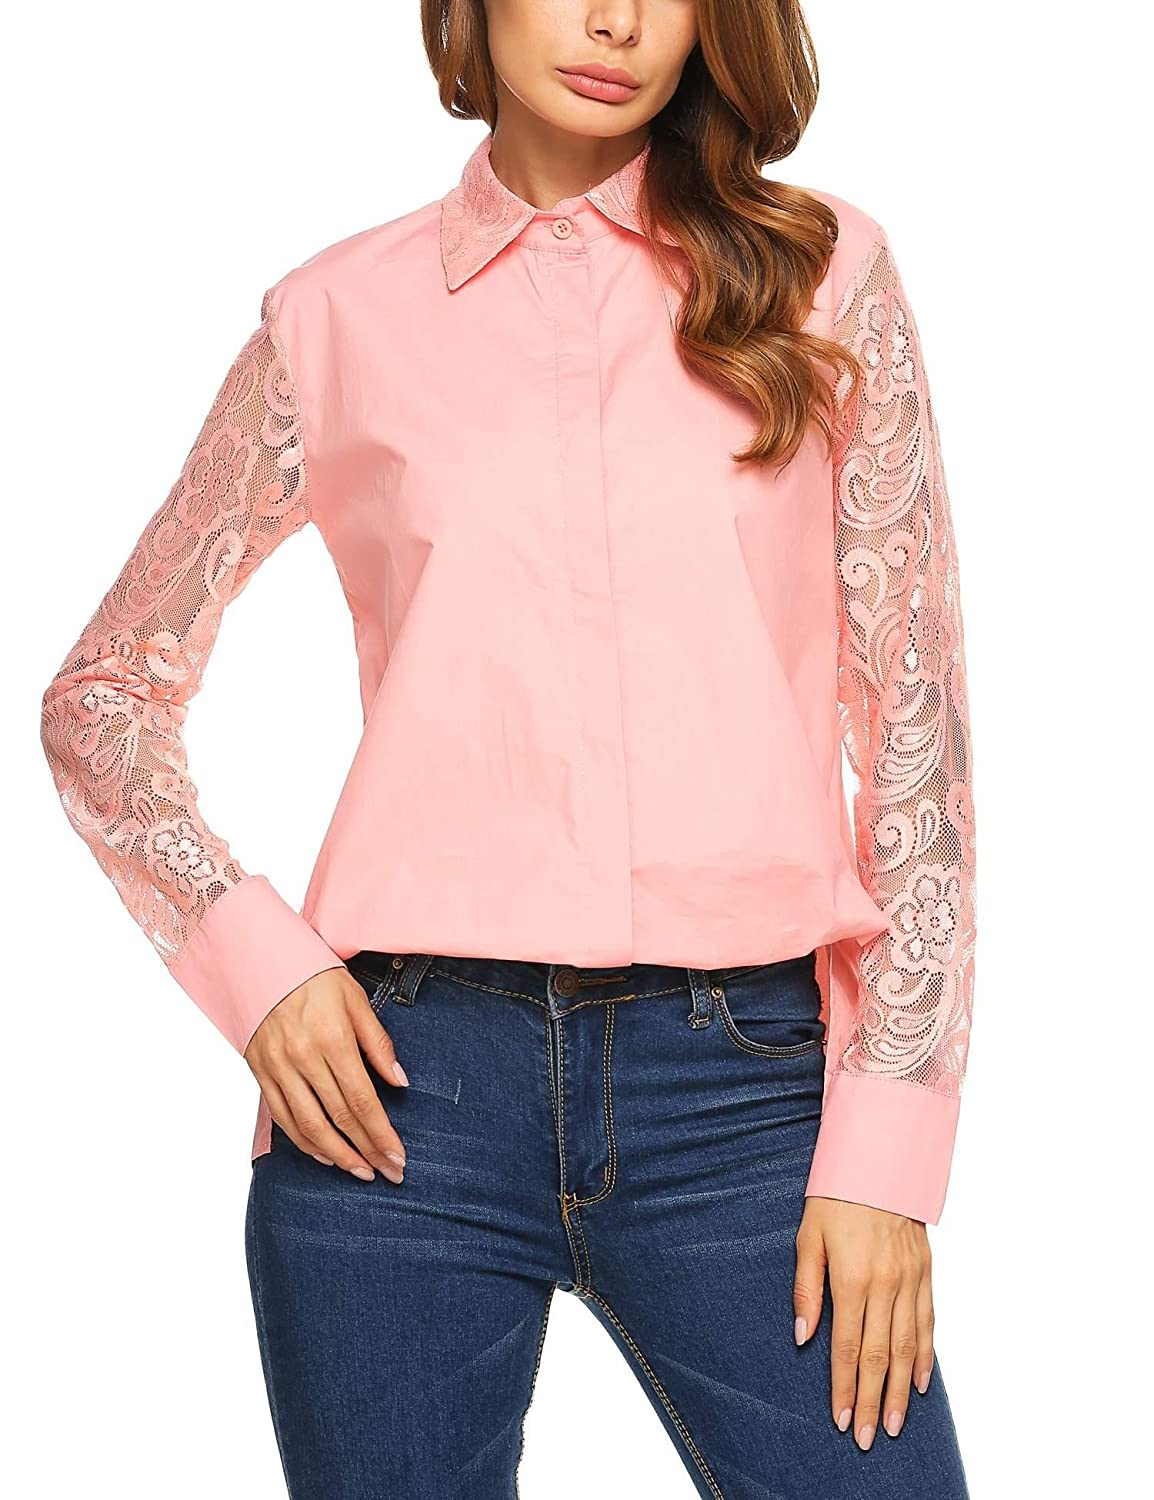 8fc0e2149 SE MIU Women Long Sleeve Turn Down Lace Collar Patchwork Shirt Blouse  Button Up High Low Pocket Tank Work Tops at Amazon Women's Clothing store: